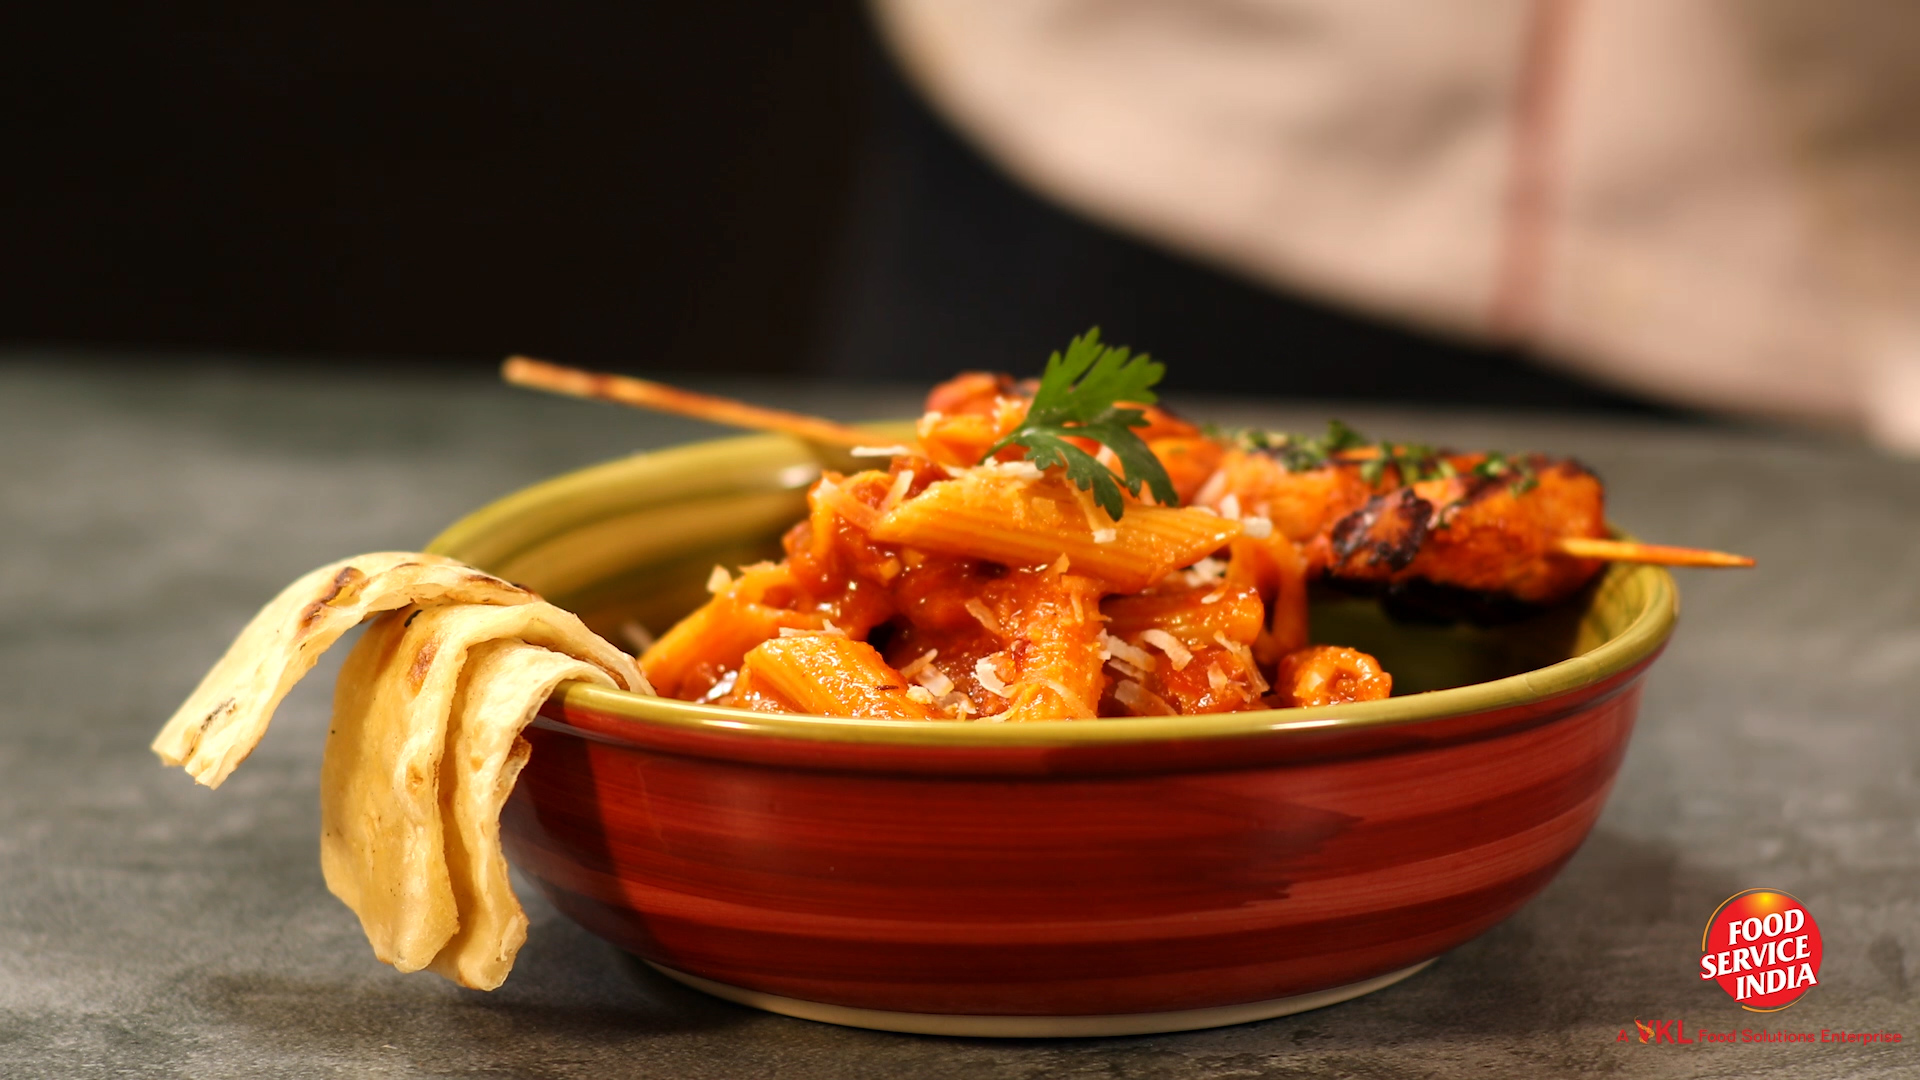 Smoked Chipotle Tikka on the Bed Of Spicy Penne Arrabiata With Garlic Naan